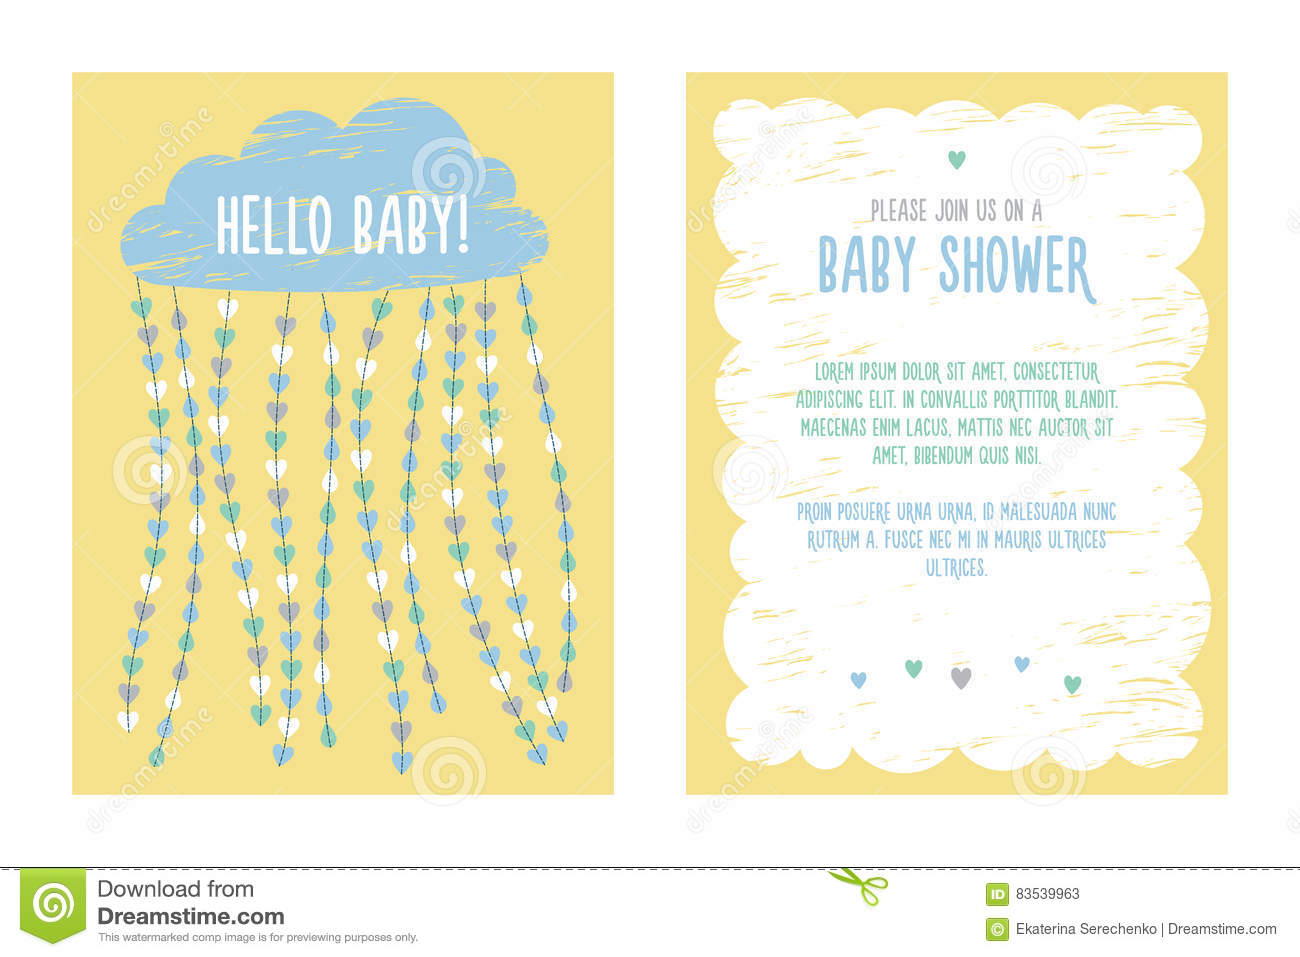 Baby shower invitation template design